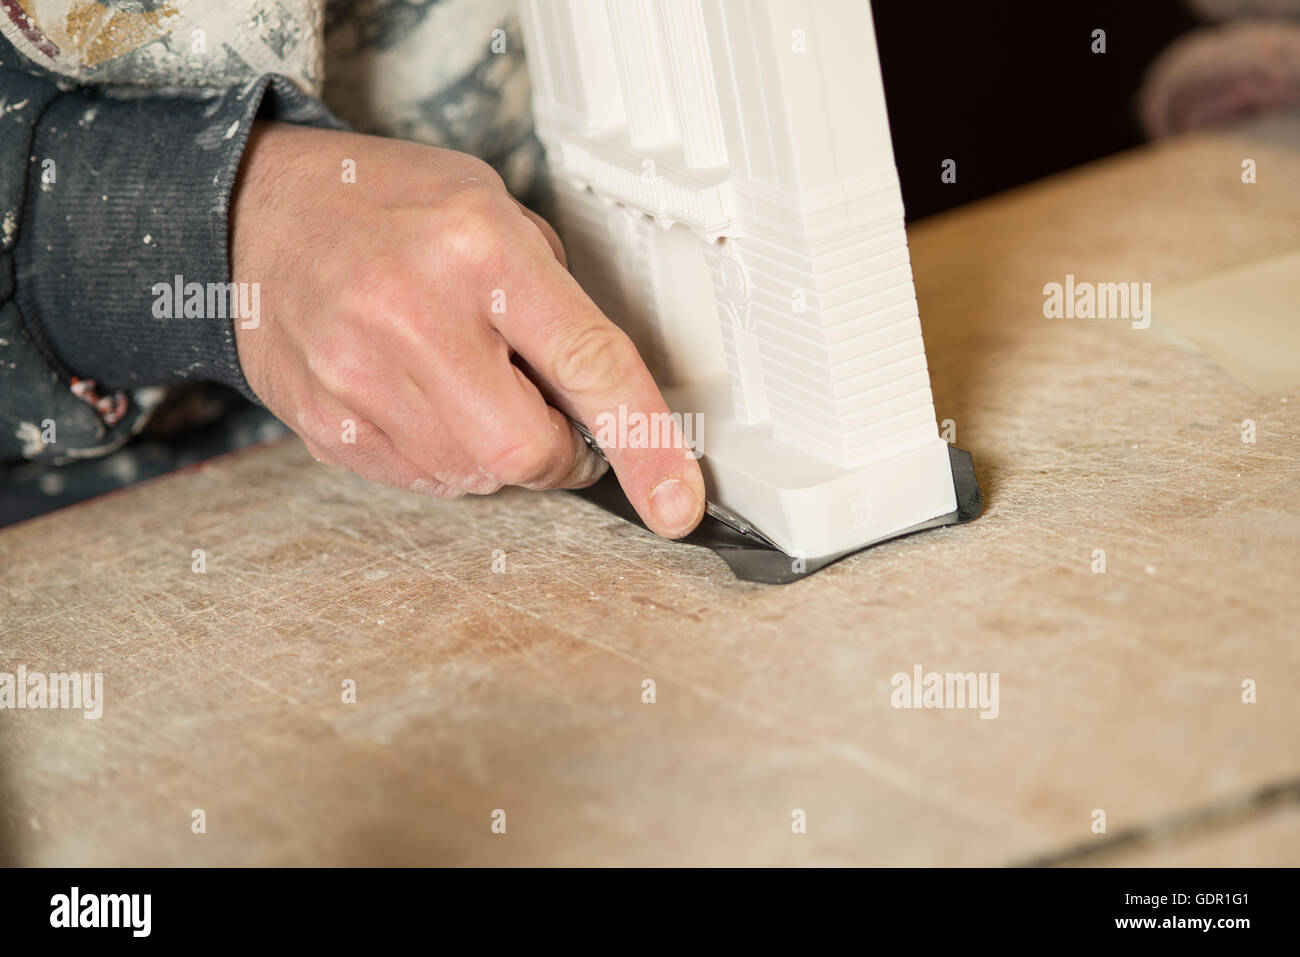 Hand trimming black paper under the base of a plaster model building using a precision blade on a wooden table - Stock Image